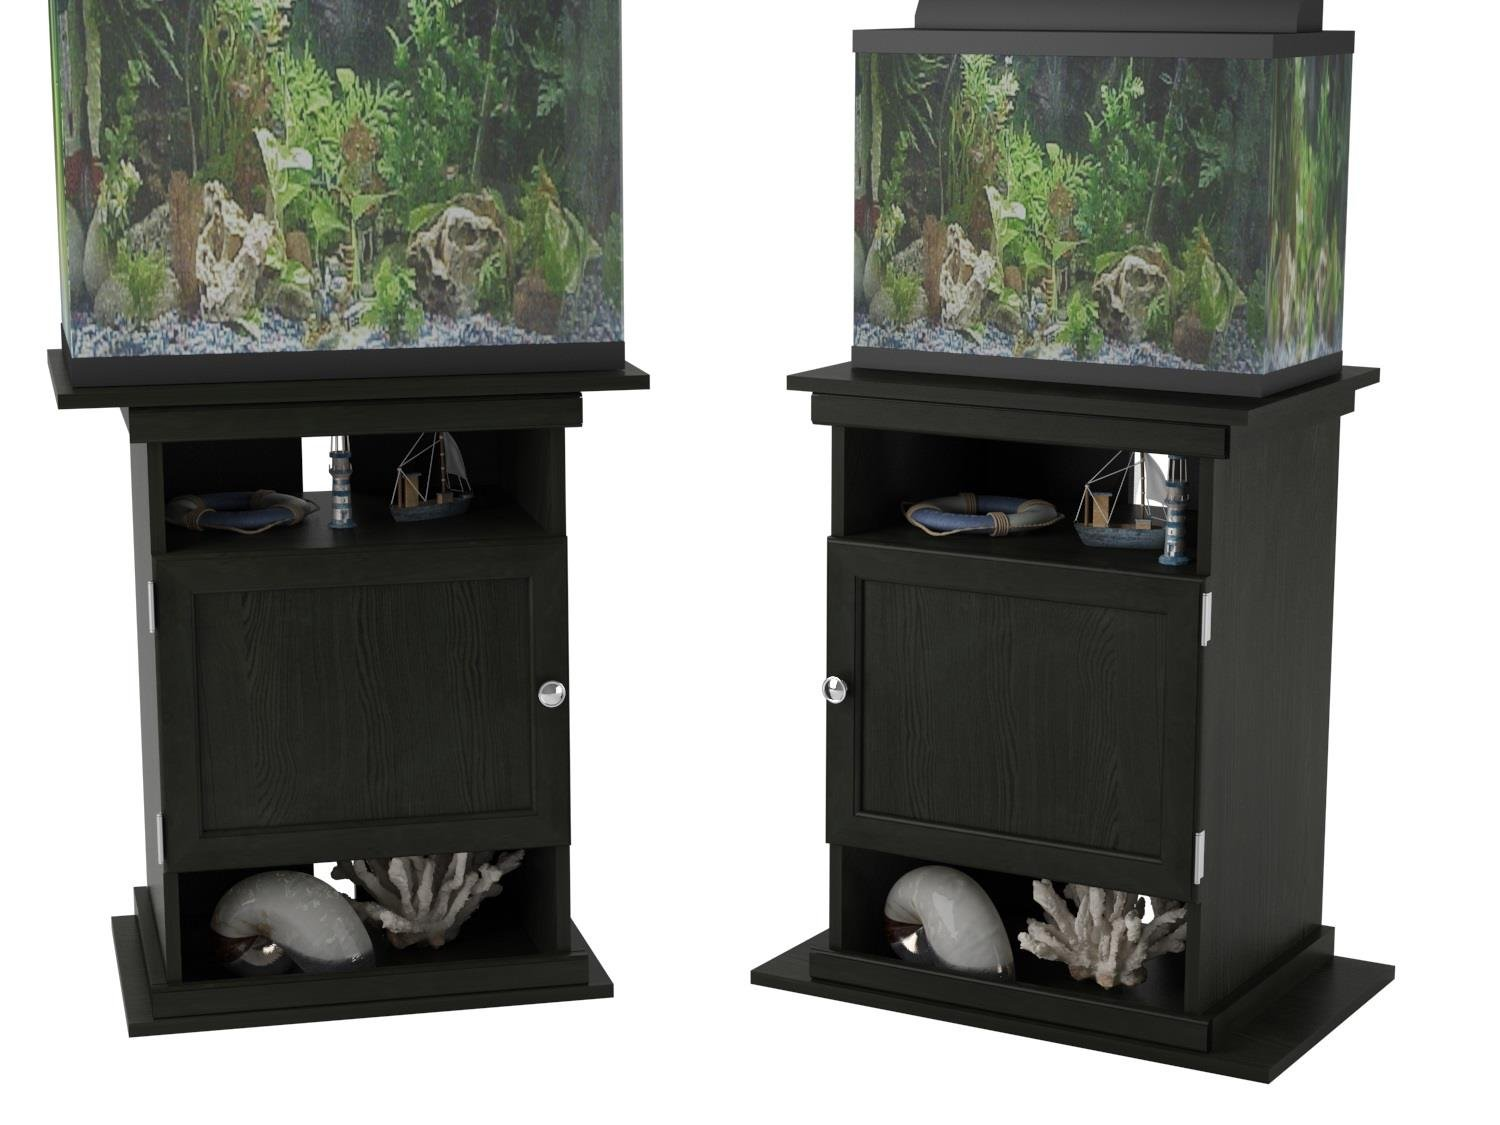 Amazon.com : Ameriwood Home Flipper 10/20 Gallon Aquarium Stand, Black Oak  : Pet Supplies